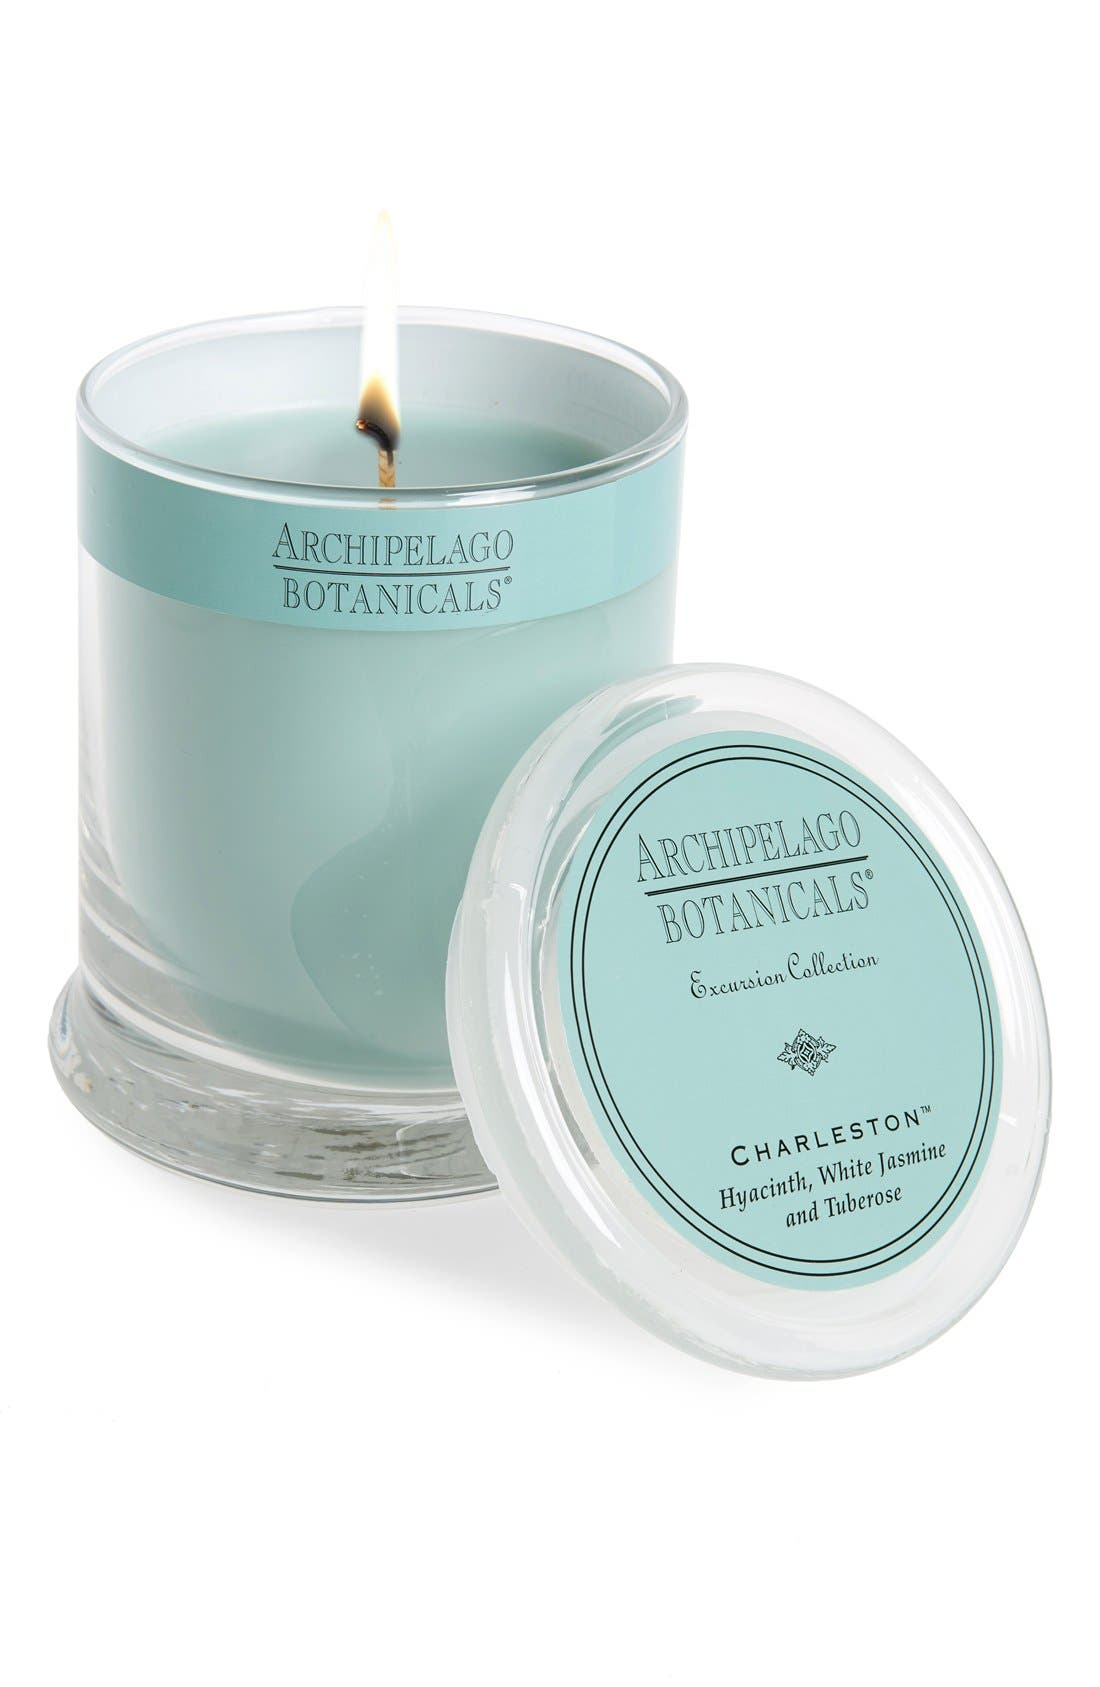 Main Image - Archipelago Botanicals 'Excursion' Glass Jar Candle